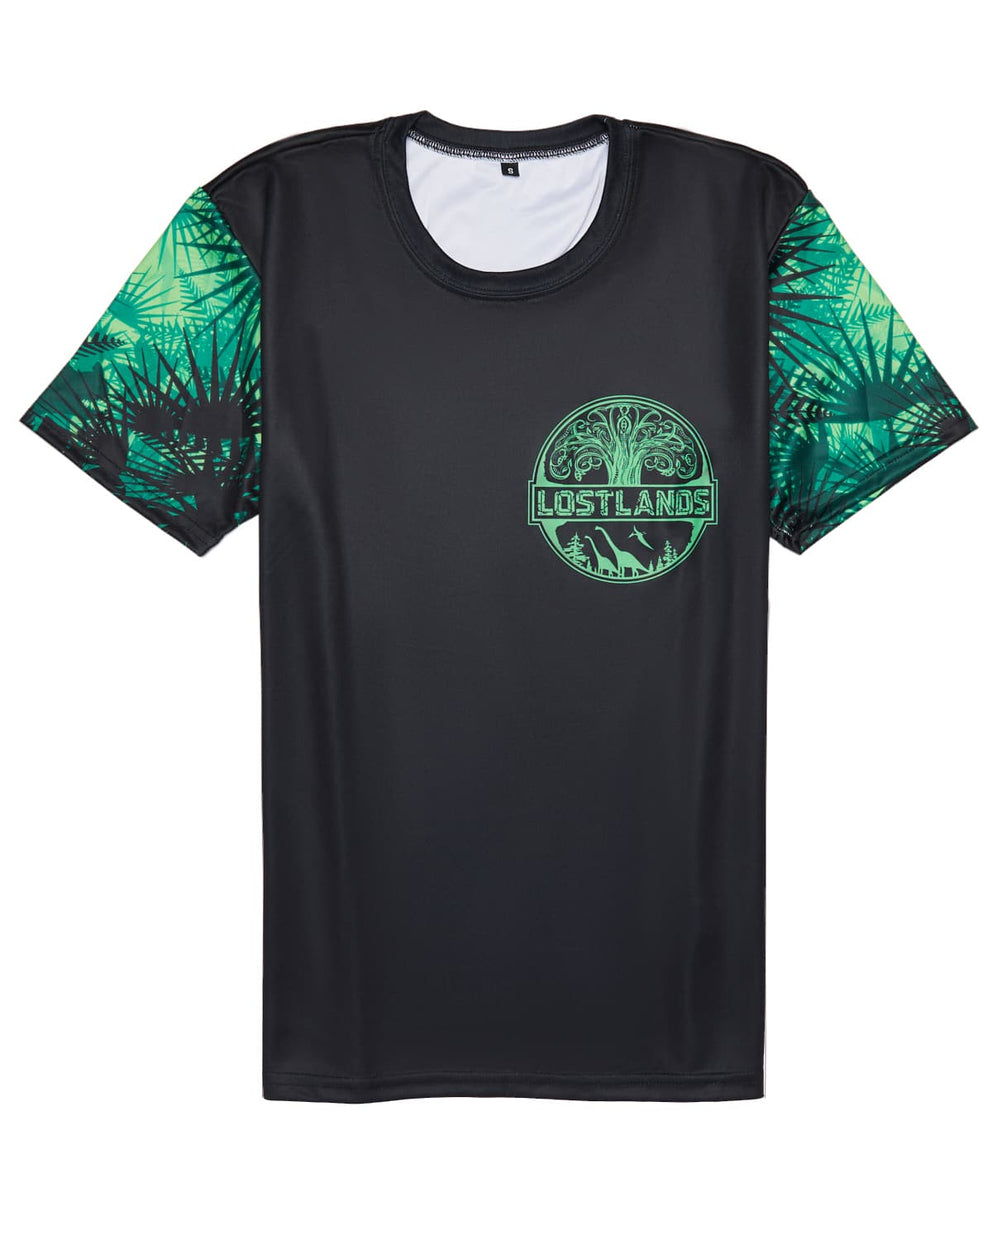 Official Lost Lands 2018 T-Shirt (Black/Green)